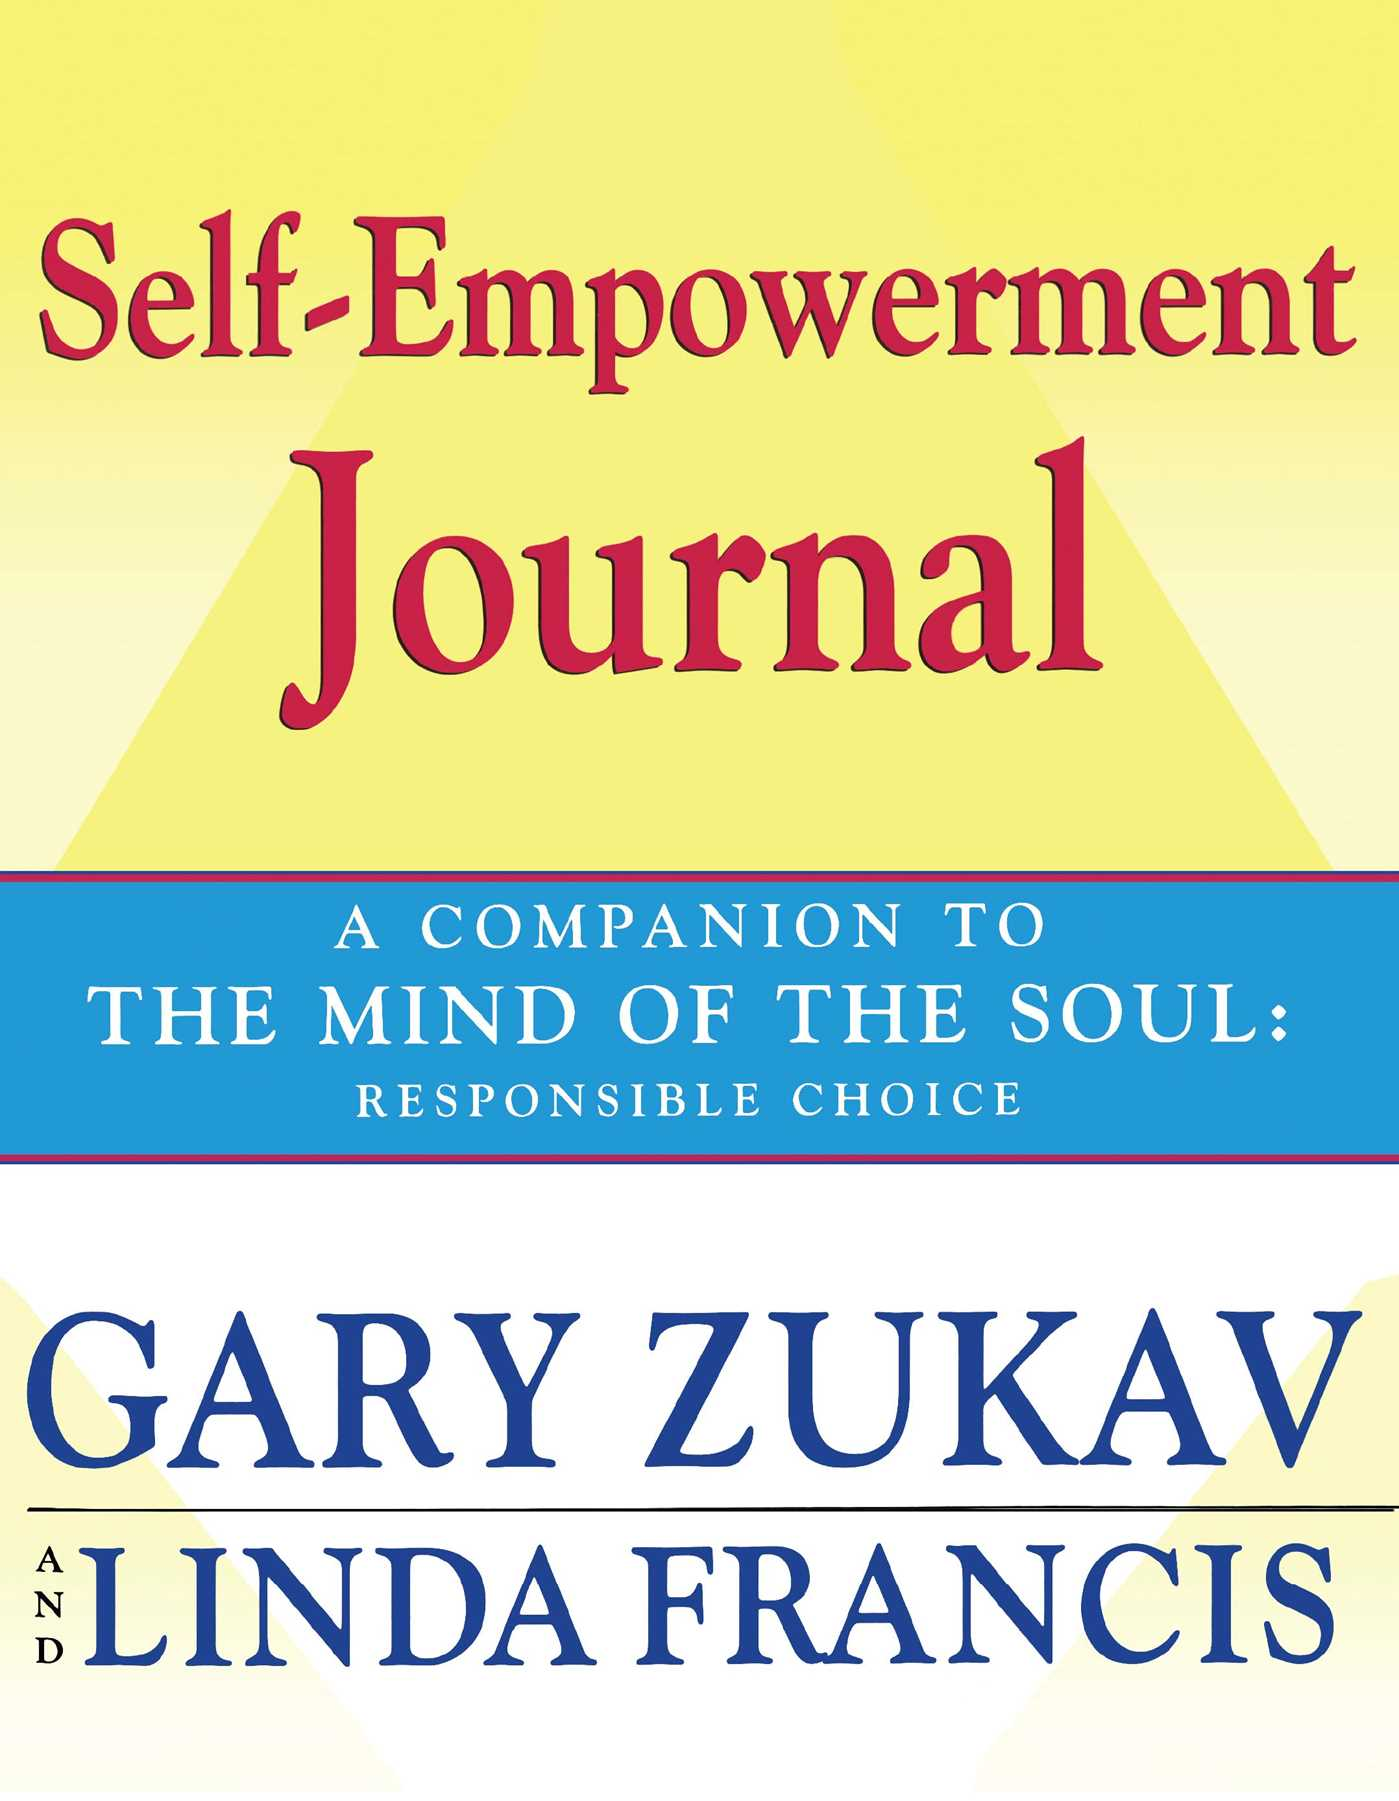 Self-empowerment-journal-9780743257466_hr